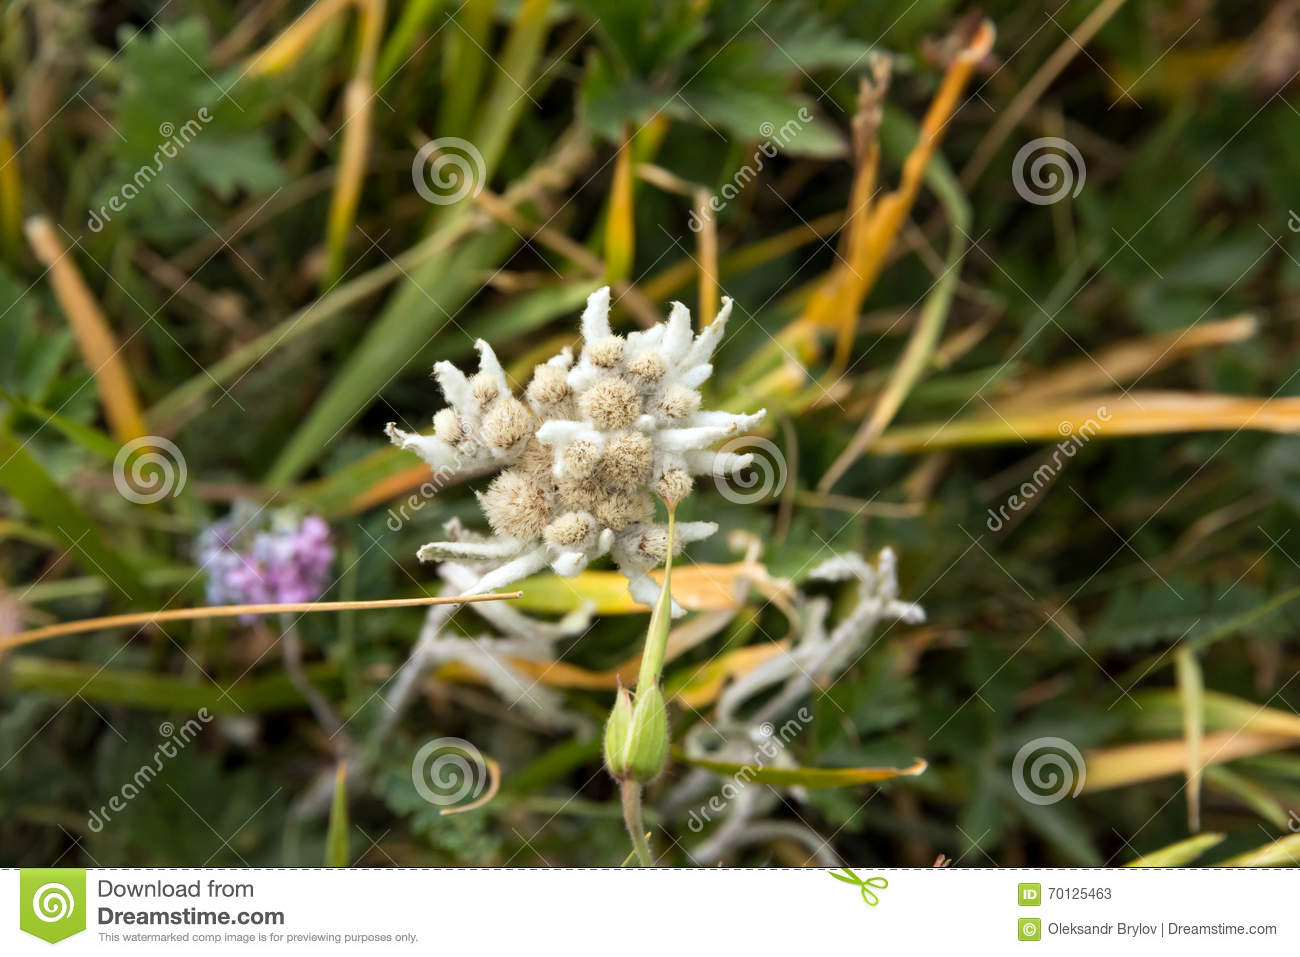 Edelweiss Flower Close Up Image From Top Stock Image , Image